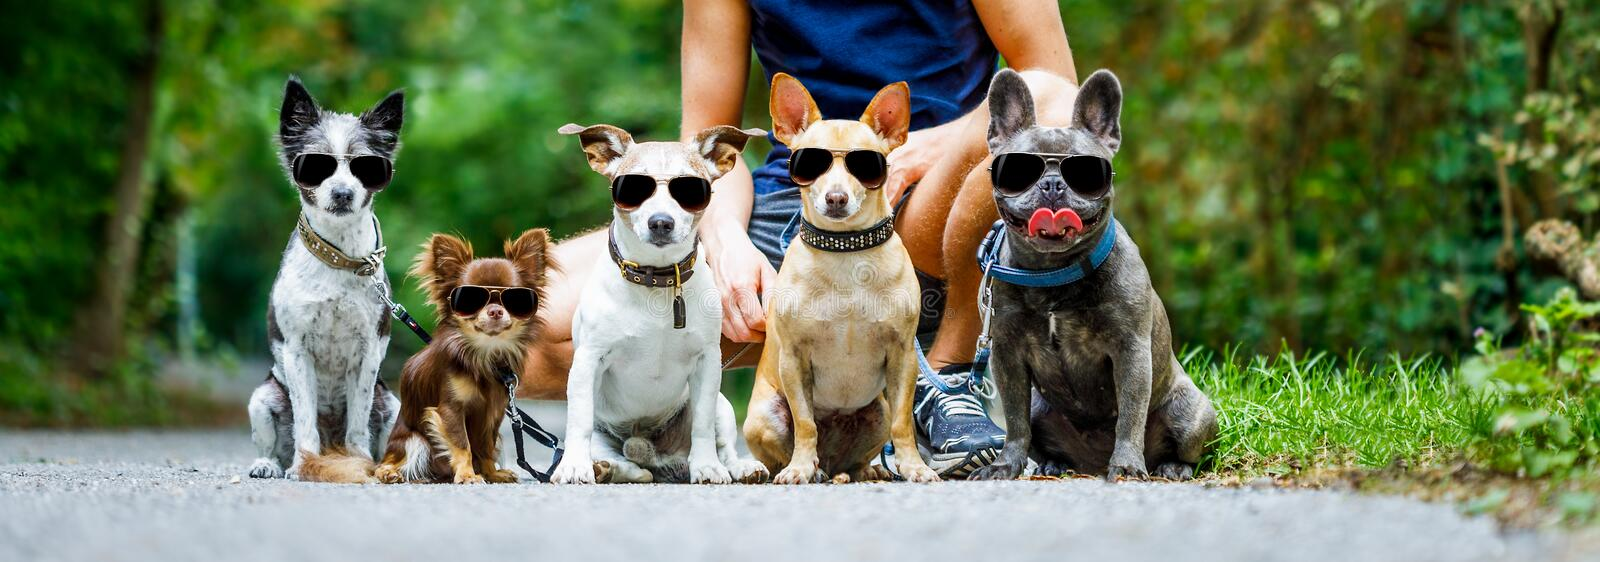 Dogs with leash and owner ready to go for a walk royalty free stock photo